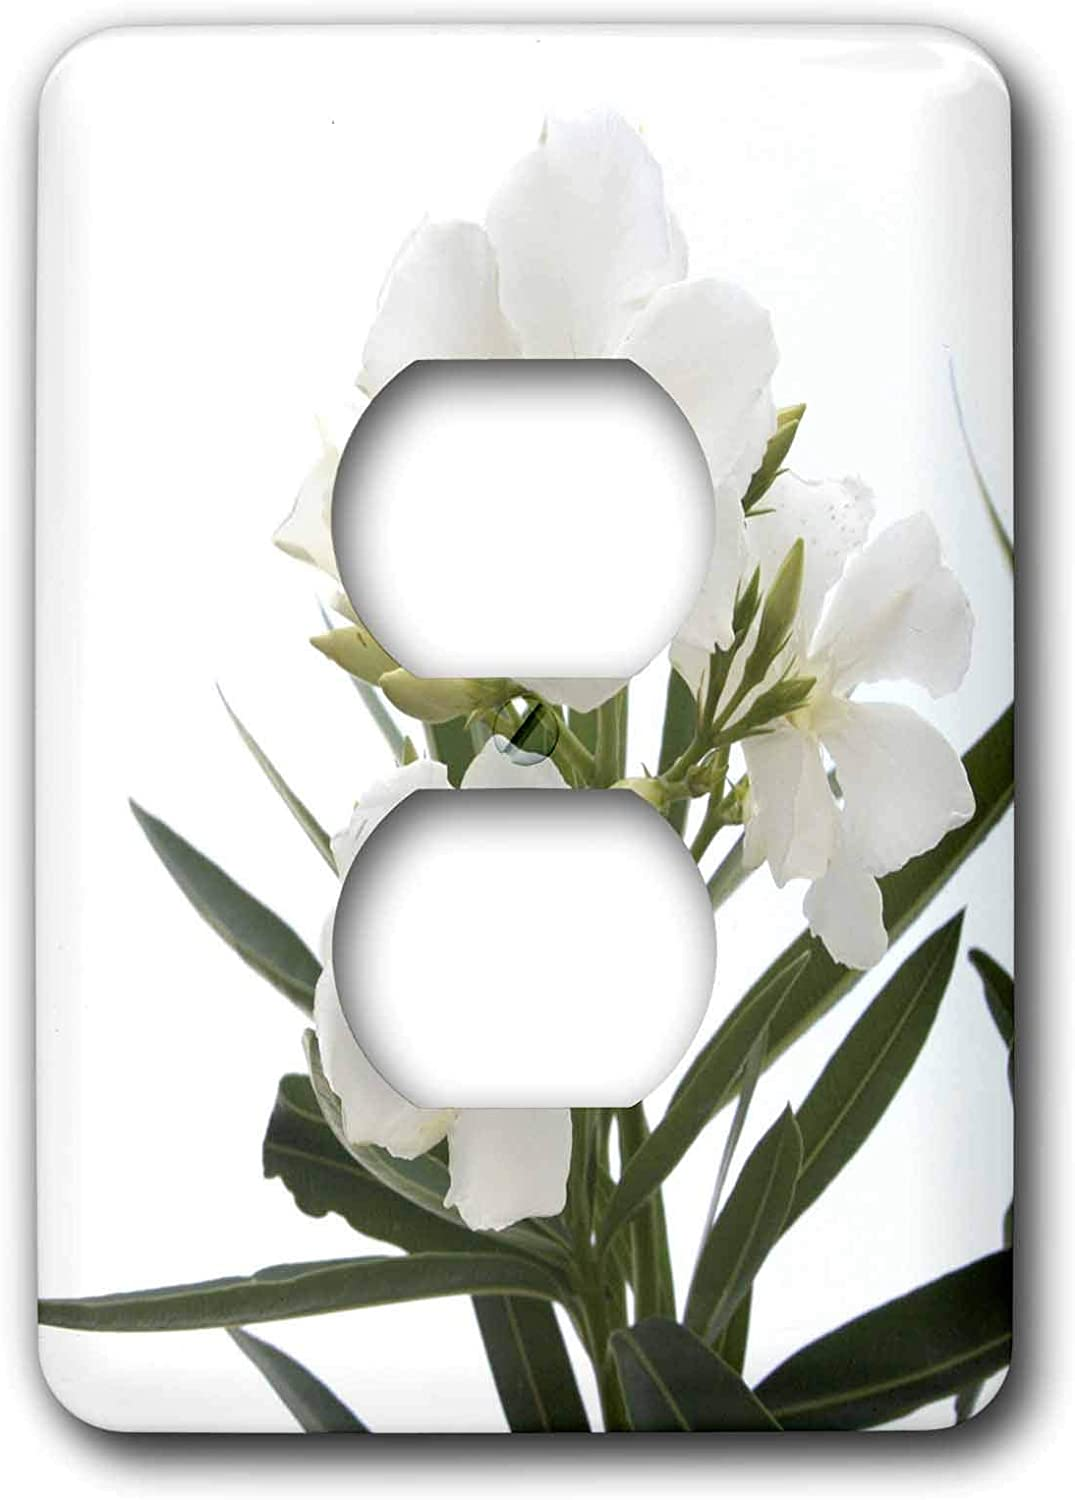 3drose Lsp 46838 6 Oleander White White Flower Tree Oleander Blossom Tropical Plant Buds 2 Plug Outlet Cover Outlet Plates Amazon Com